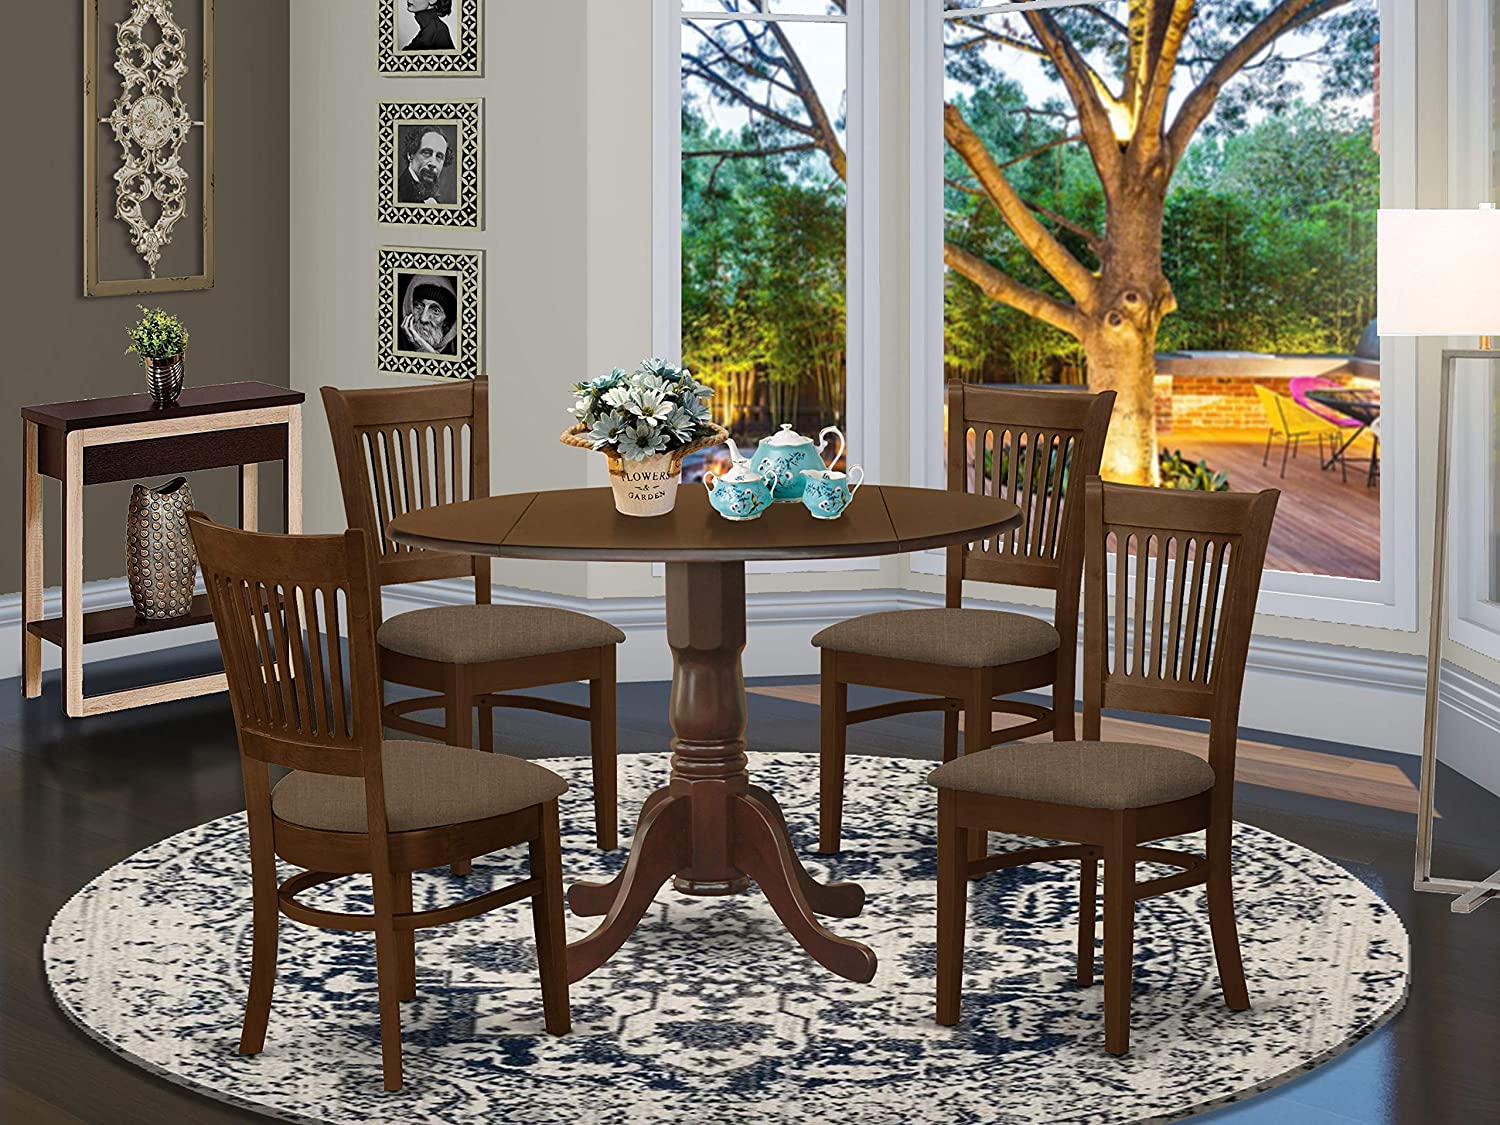 Amazon Com East West Furniture Dlva5 Esp C 5 Pc Kitchen Dining Table Set Espresso Finish Two 9 Inch Drops Leave And Pedestal Legs Small 4 Slatted Back Wooden Chairs